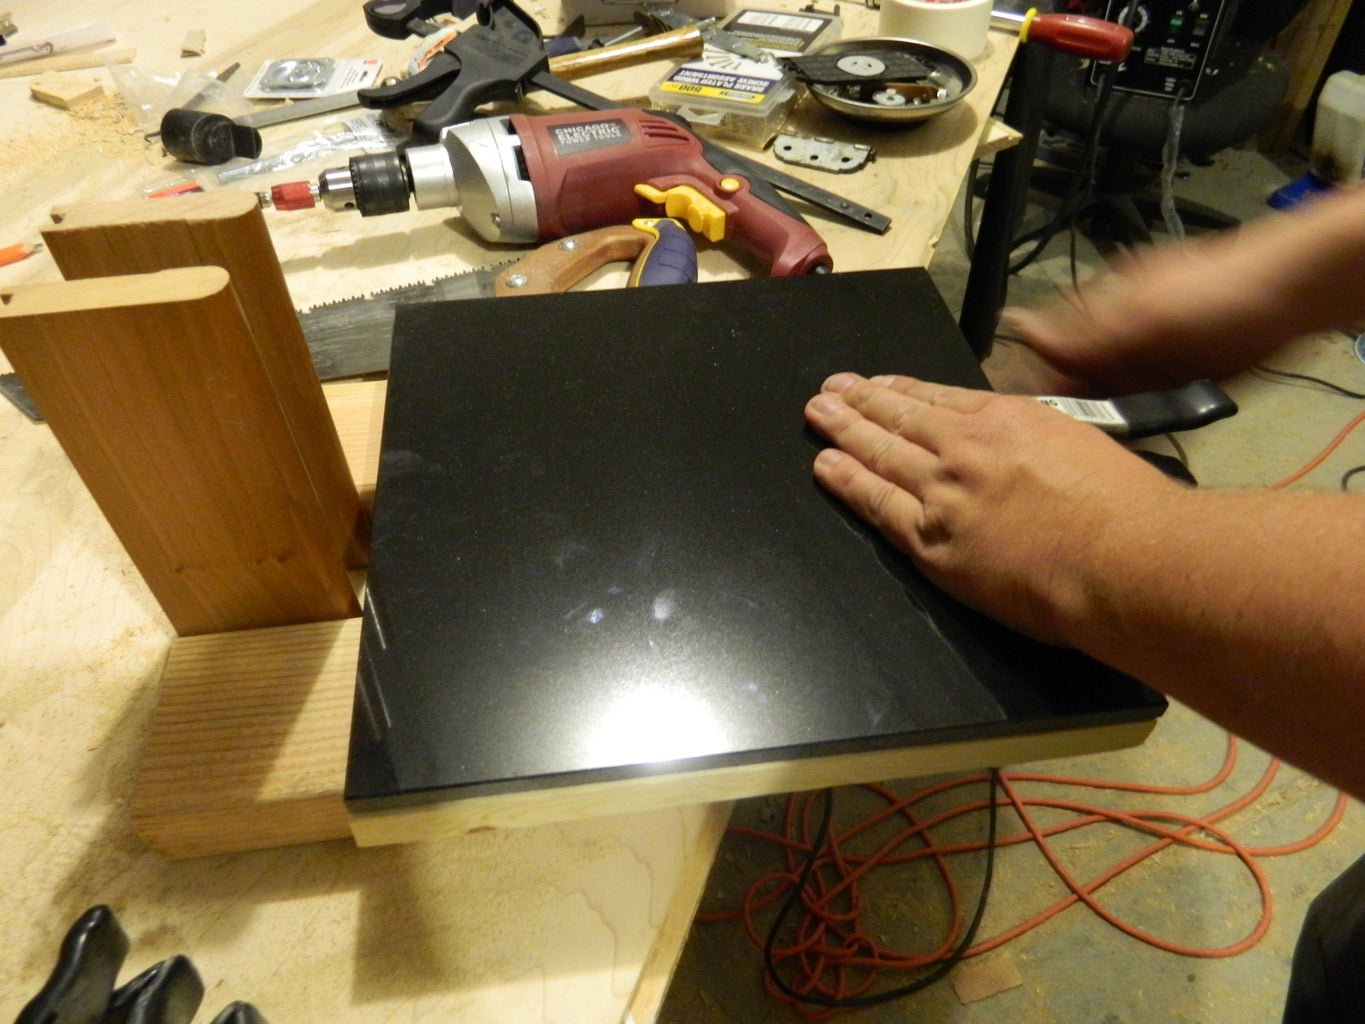 Build the Two Halves of the Pressing Surface